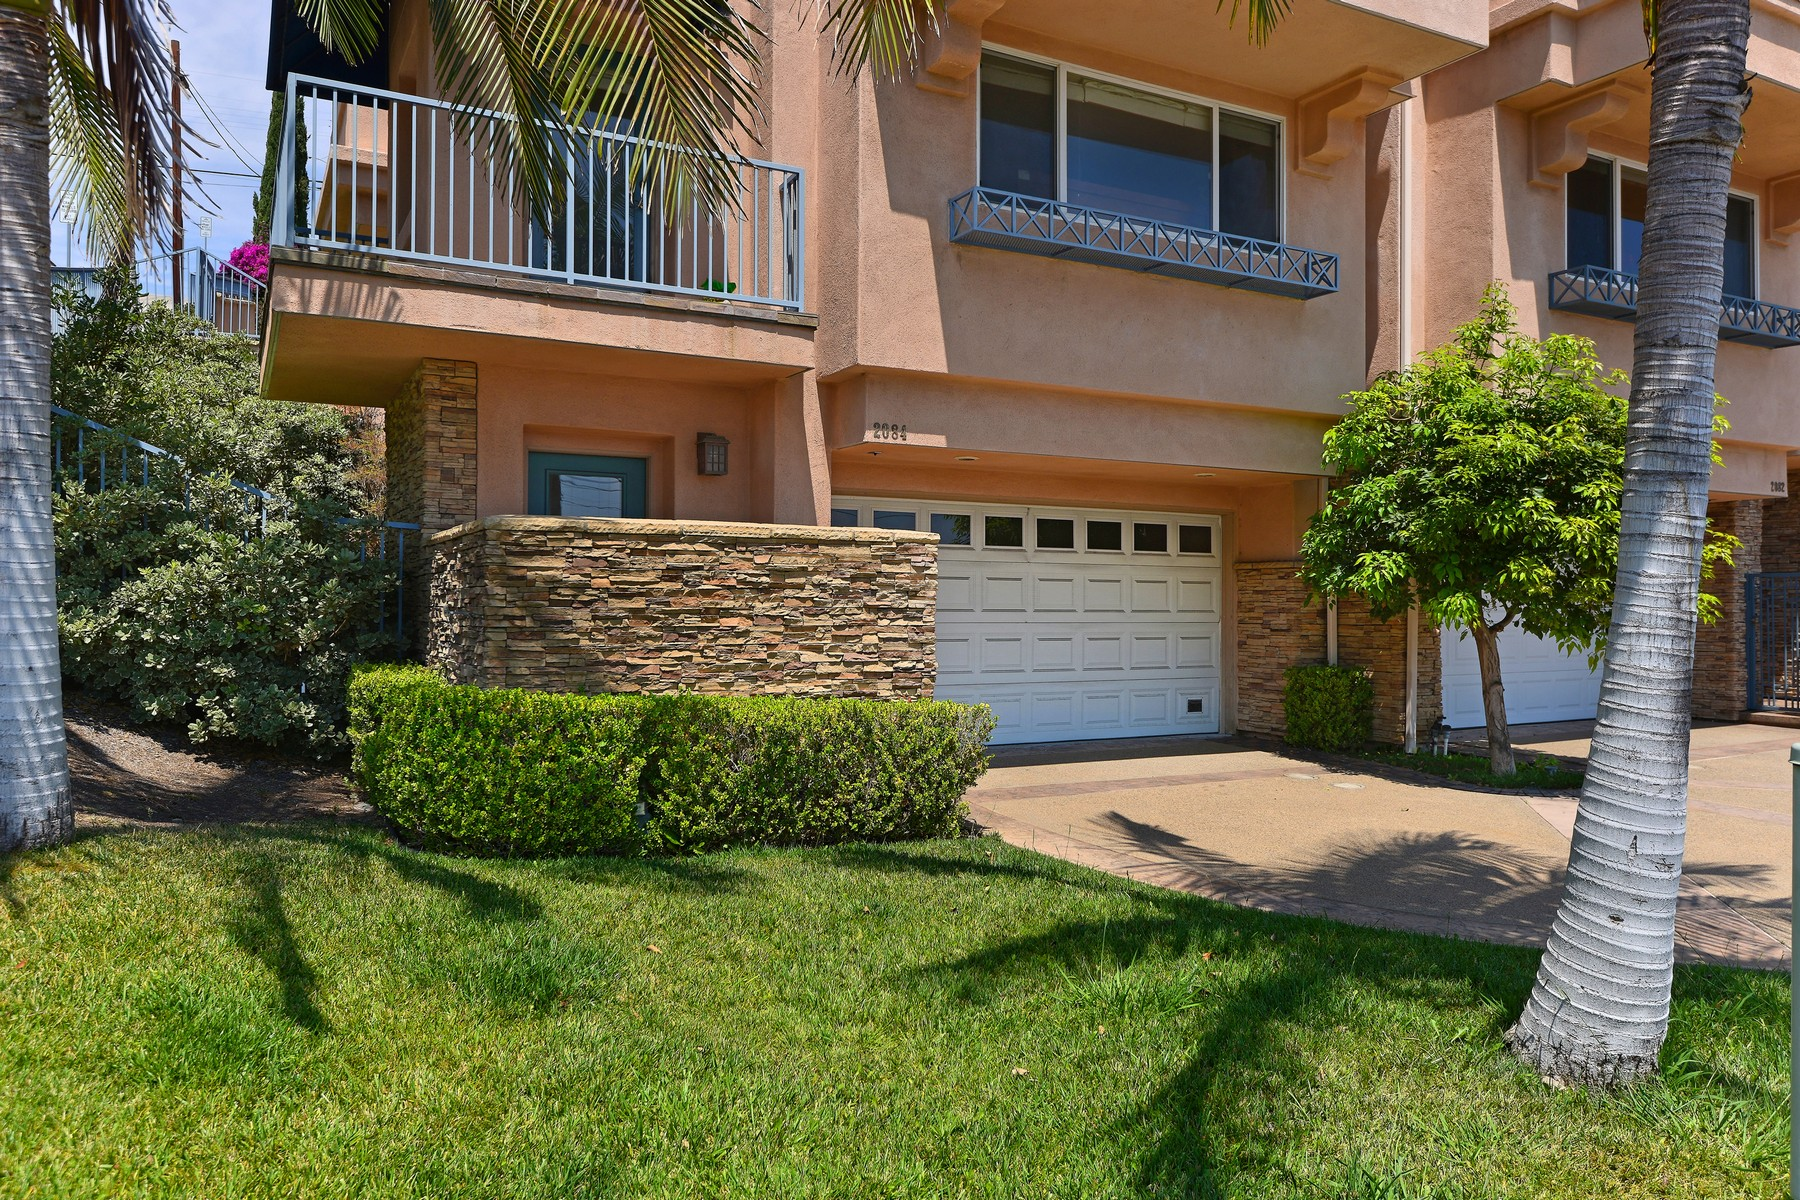 Additional photo for property listing at 2084 San Diego Avenue  San Diego, California 92110 United States